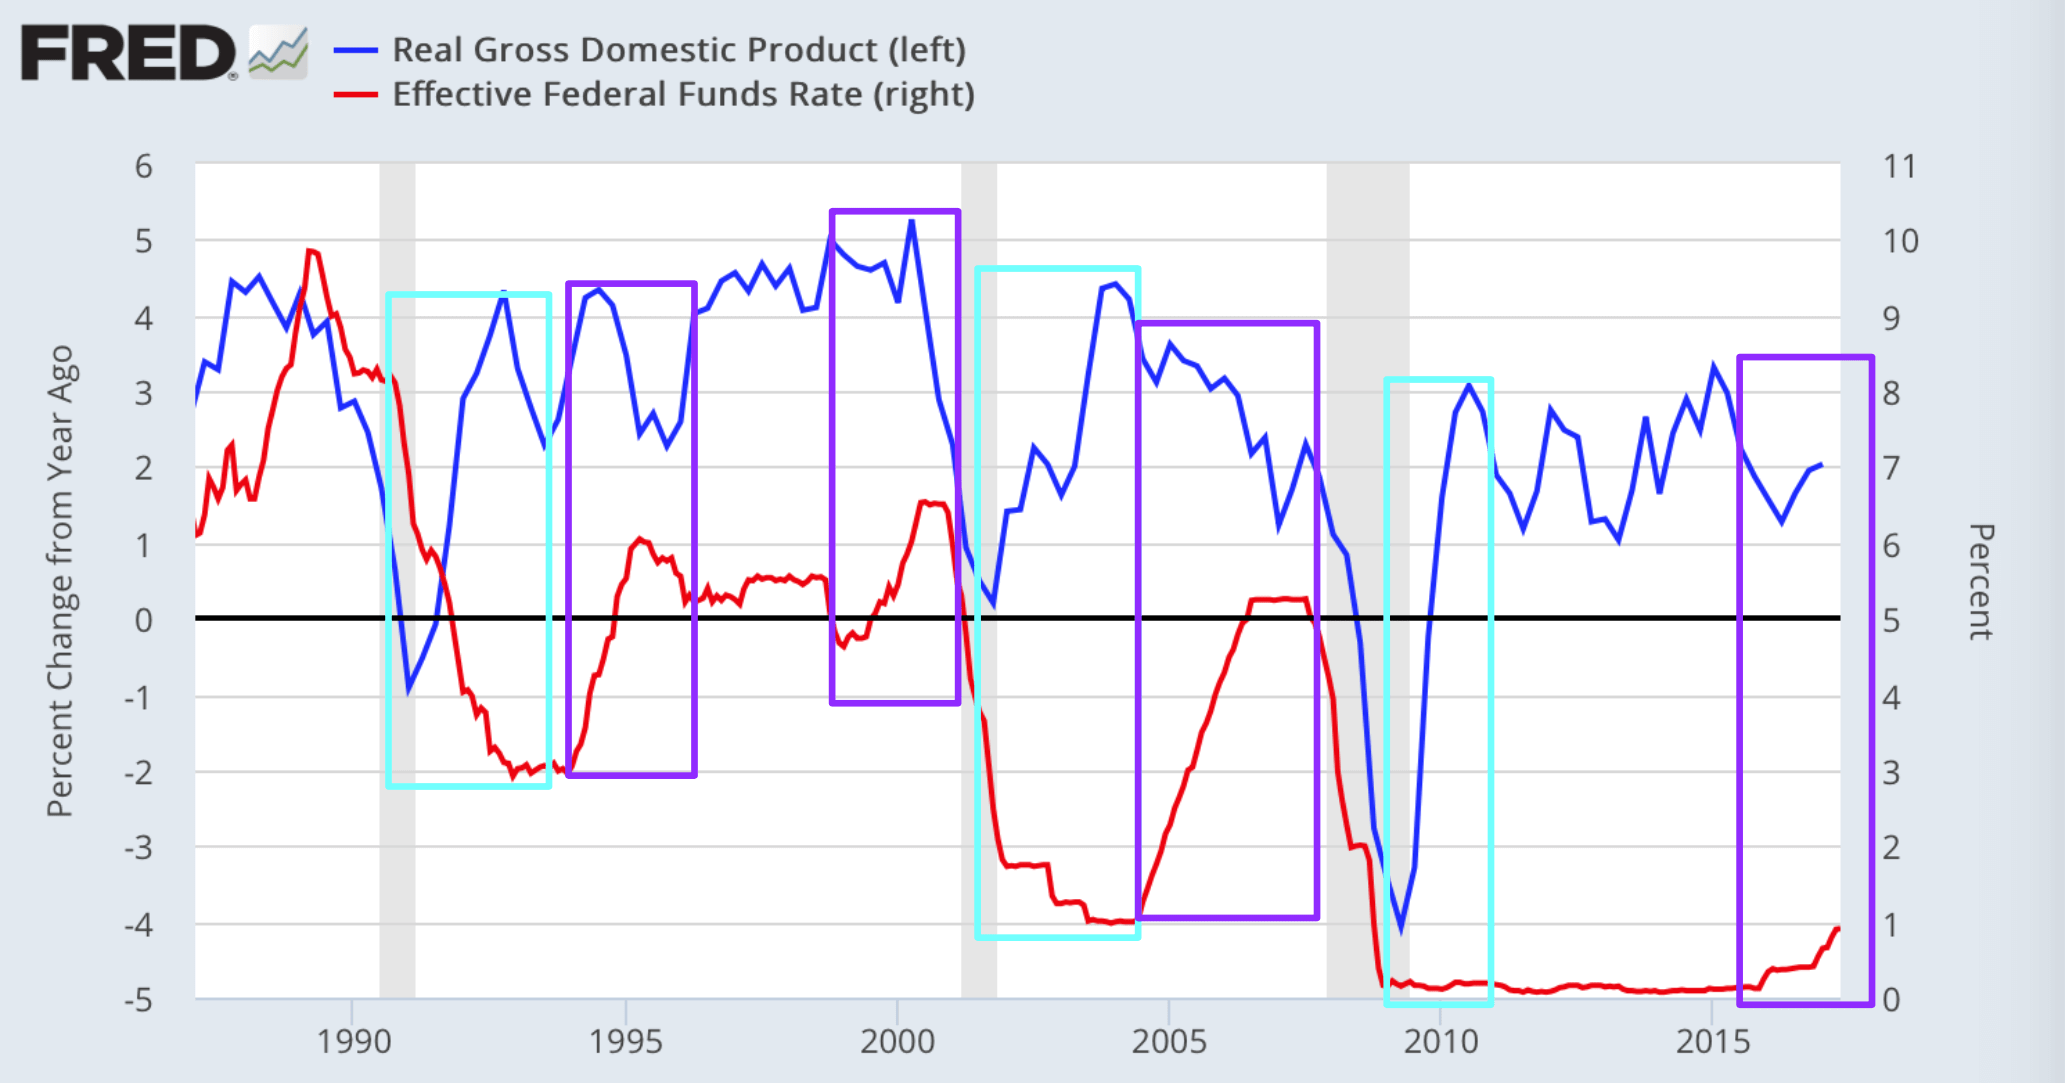 Fed Rate Hikes Are More About Slowing GDP Than Improving GDP